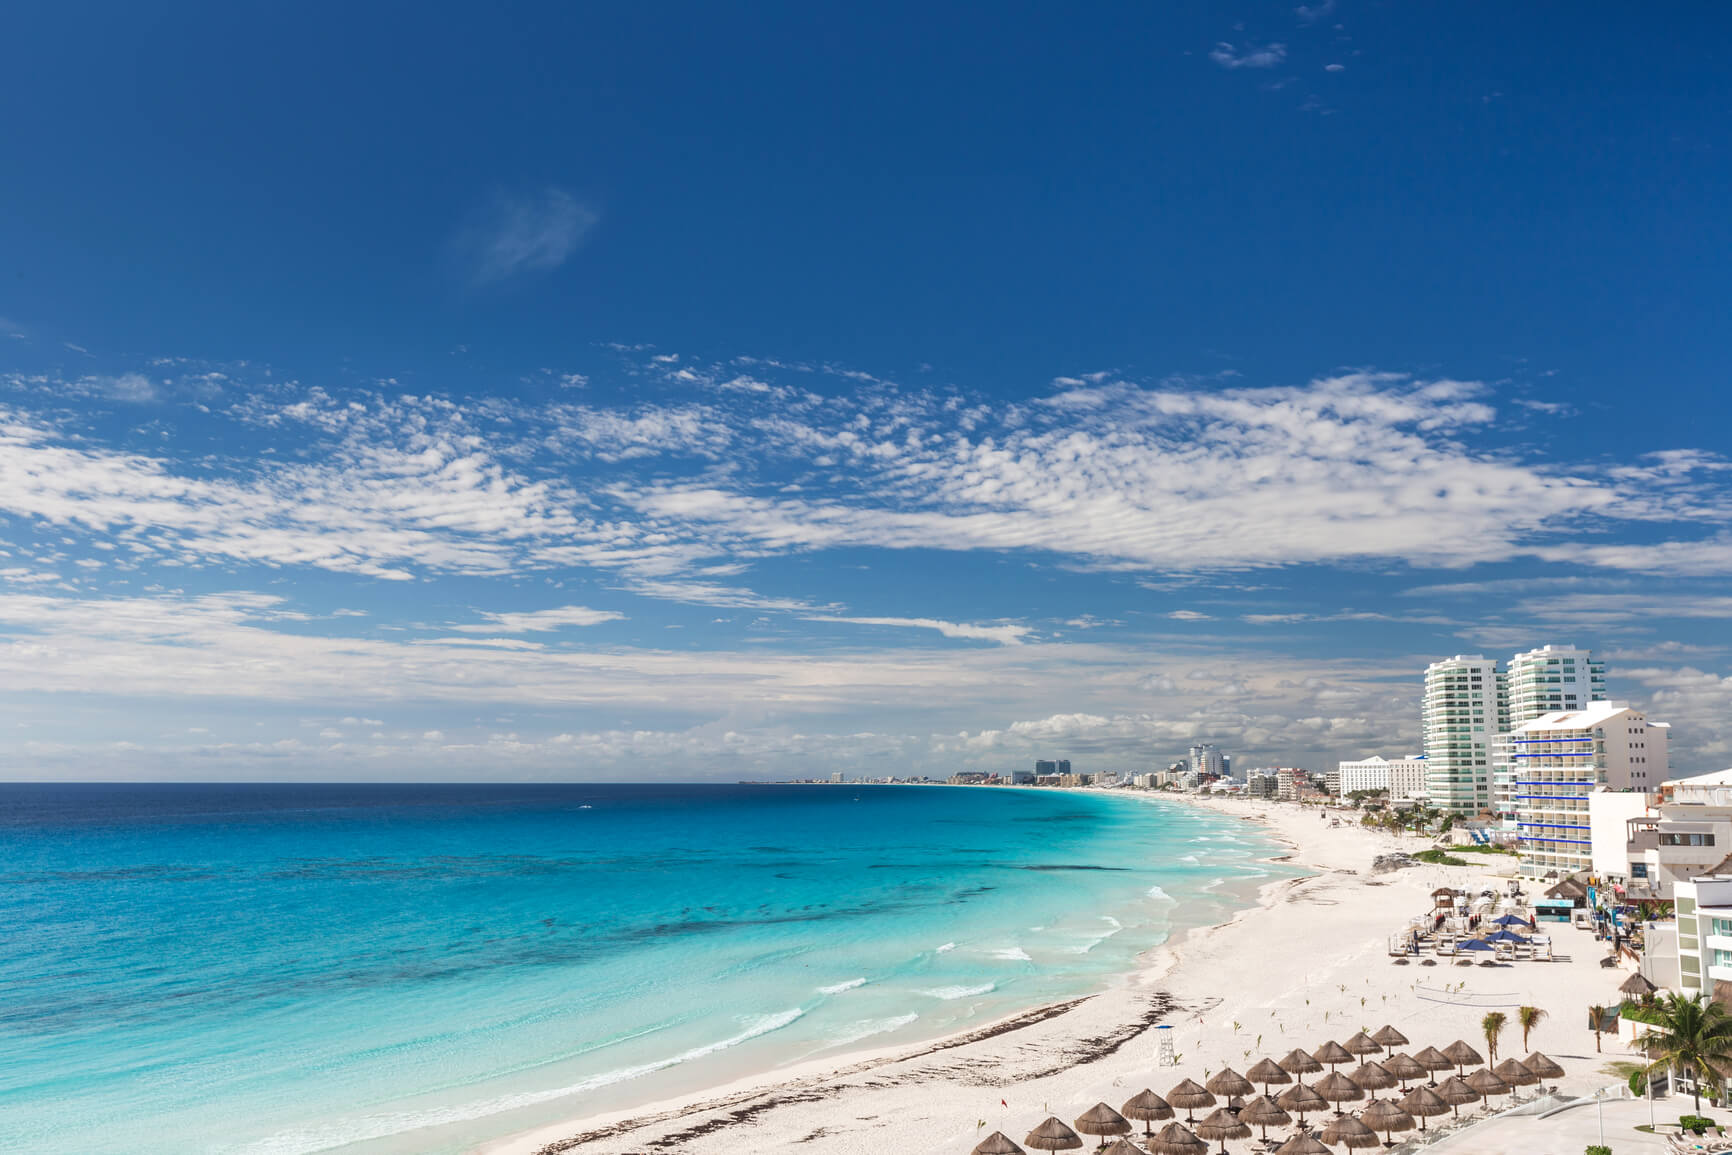 SUMMER: New York to Cancun, Mexico for only $234 roundtrip (Aug-Oct dates)